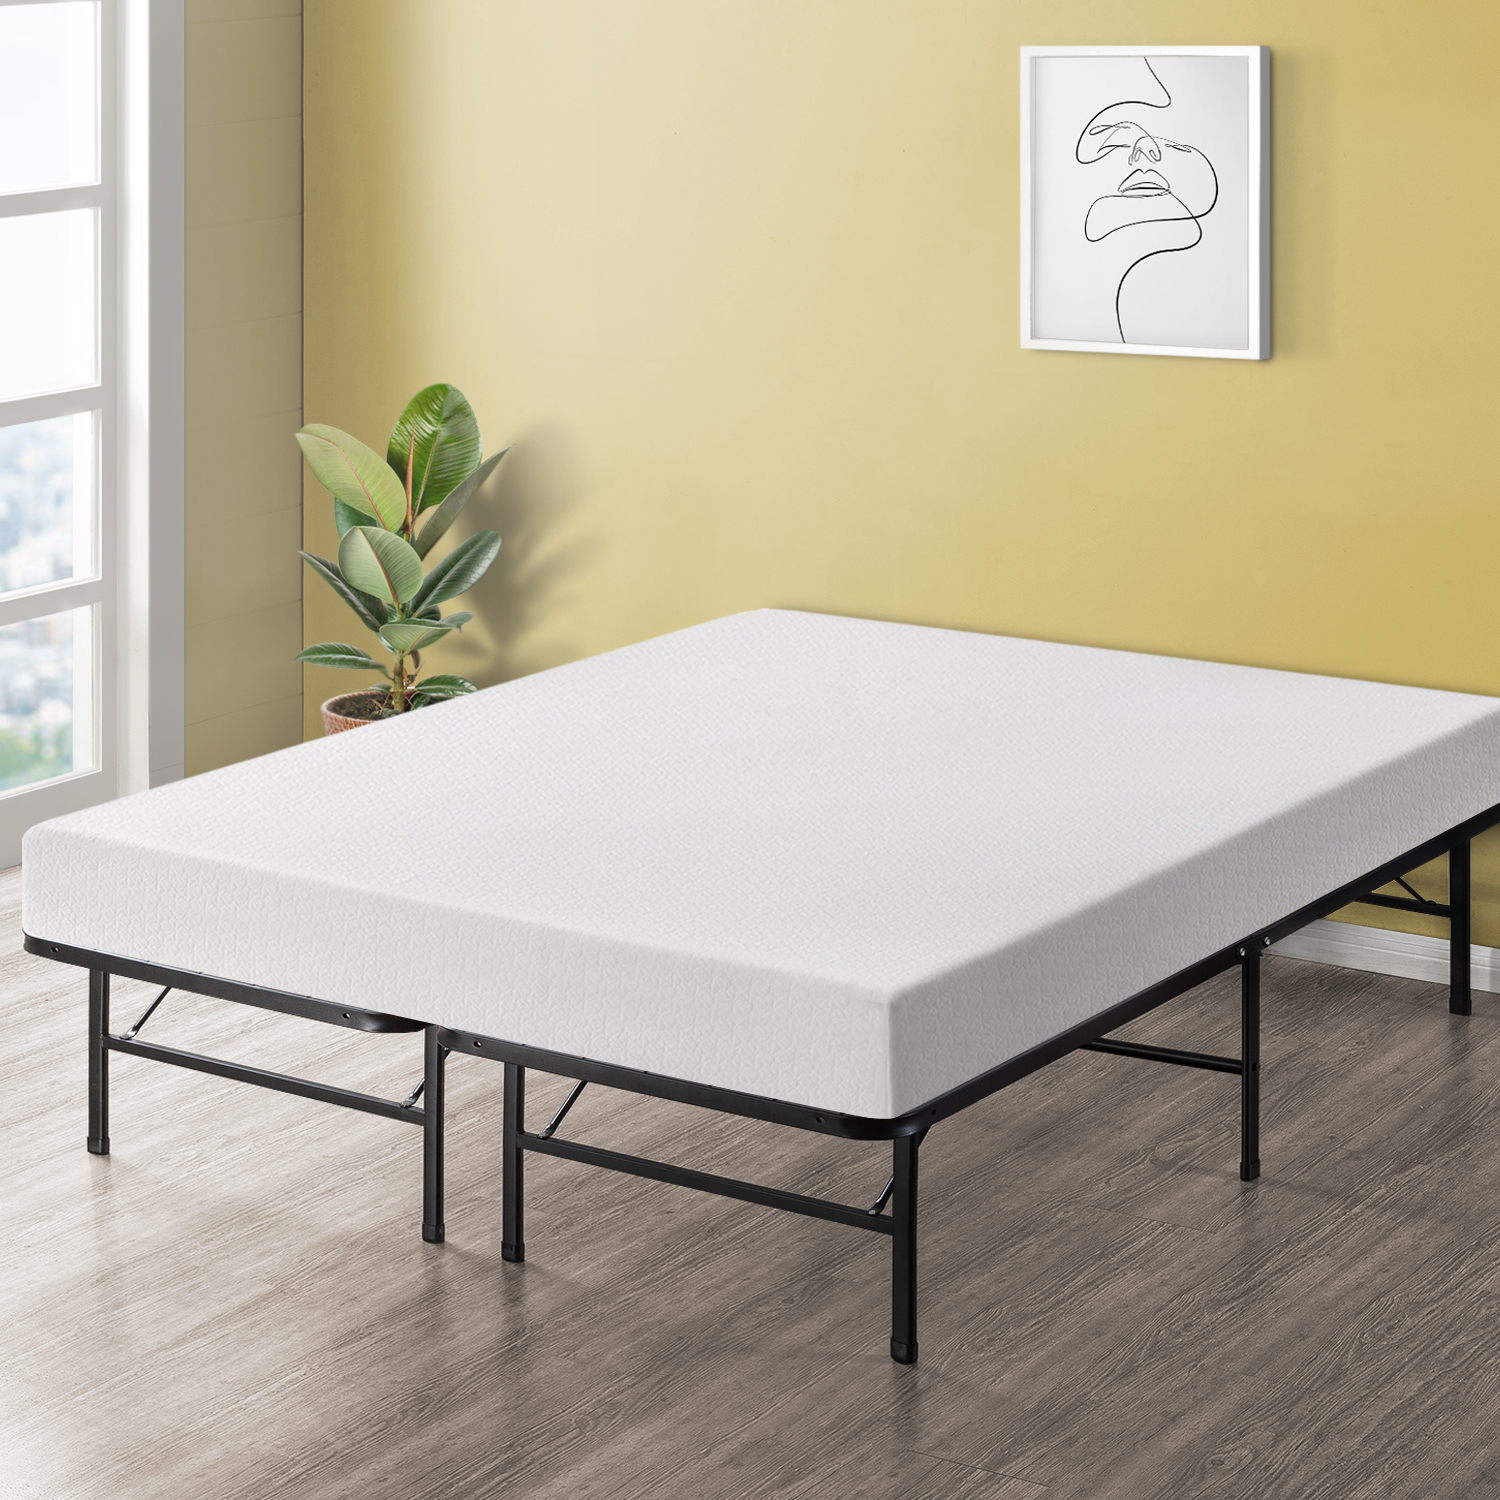 Best Price Mattress 8 Inch Memory Foam Mattress - Walmart.com